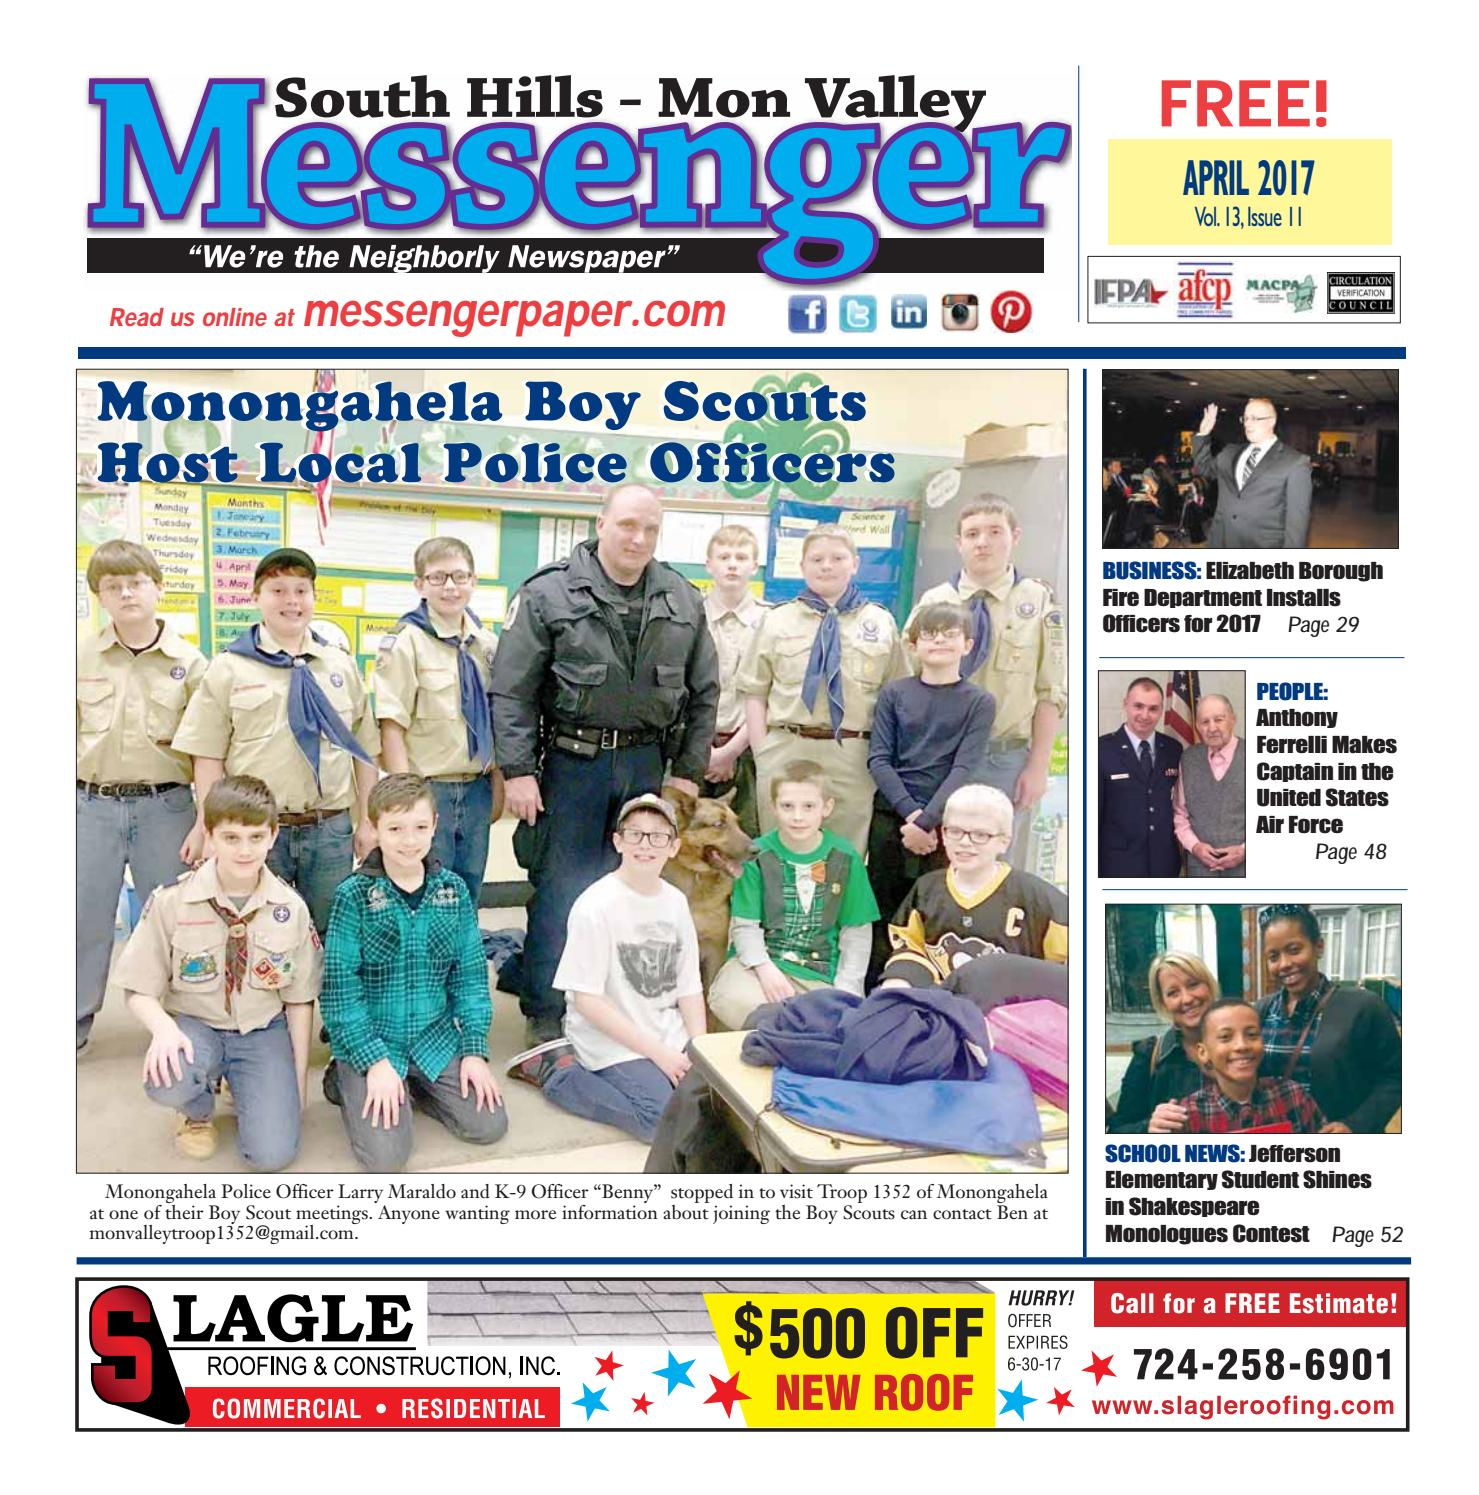 South hills mon valley messenger april 2017 by south hills mon south hills mon valley messenger april 2017 by south hills mon valley messenger issuu fandeluxe Choice Image